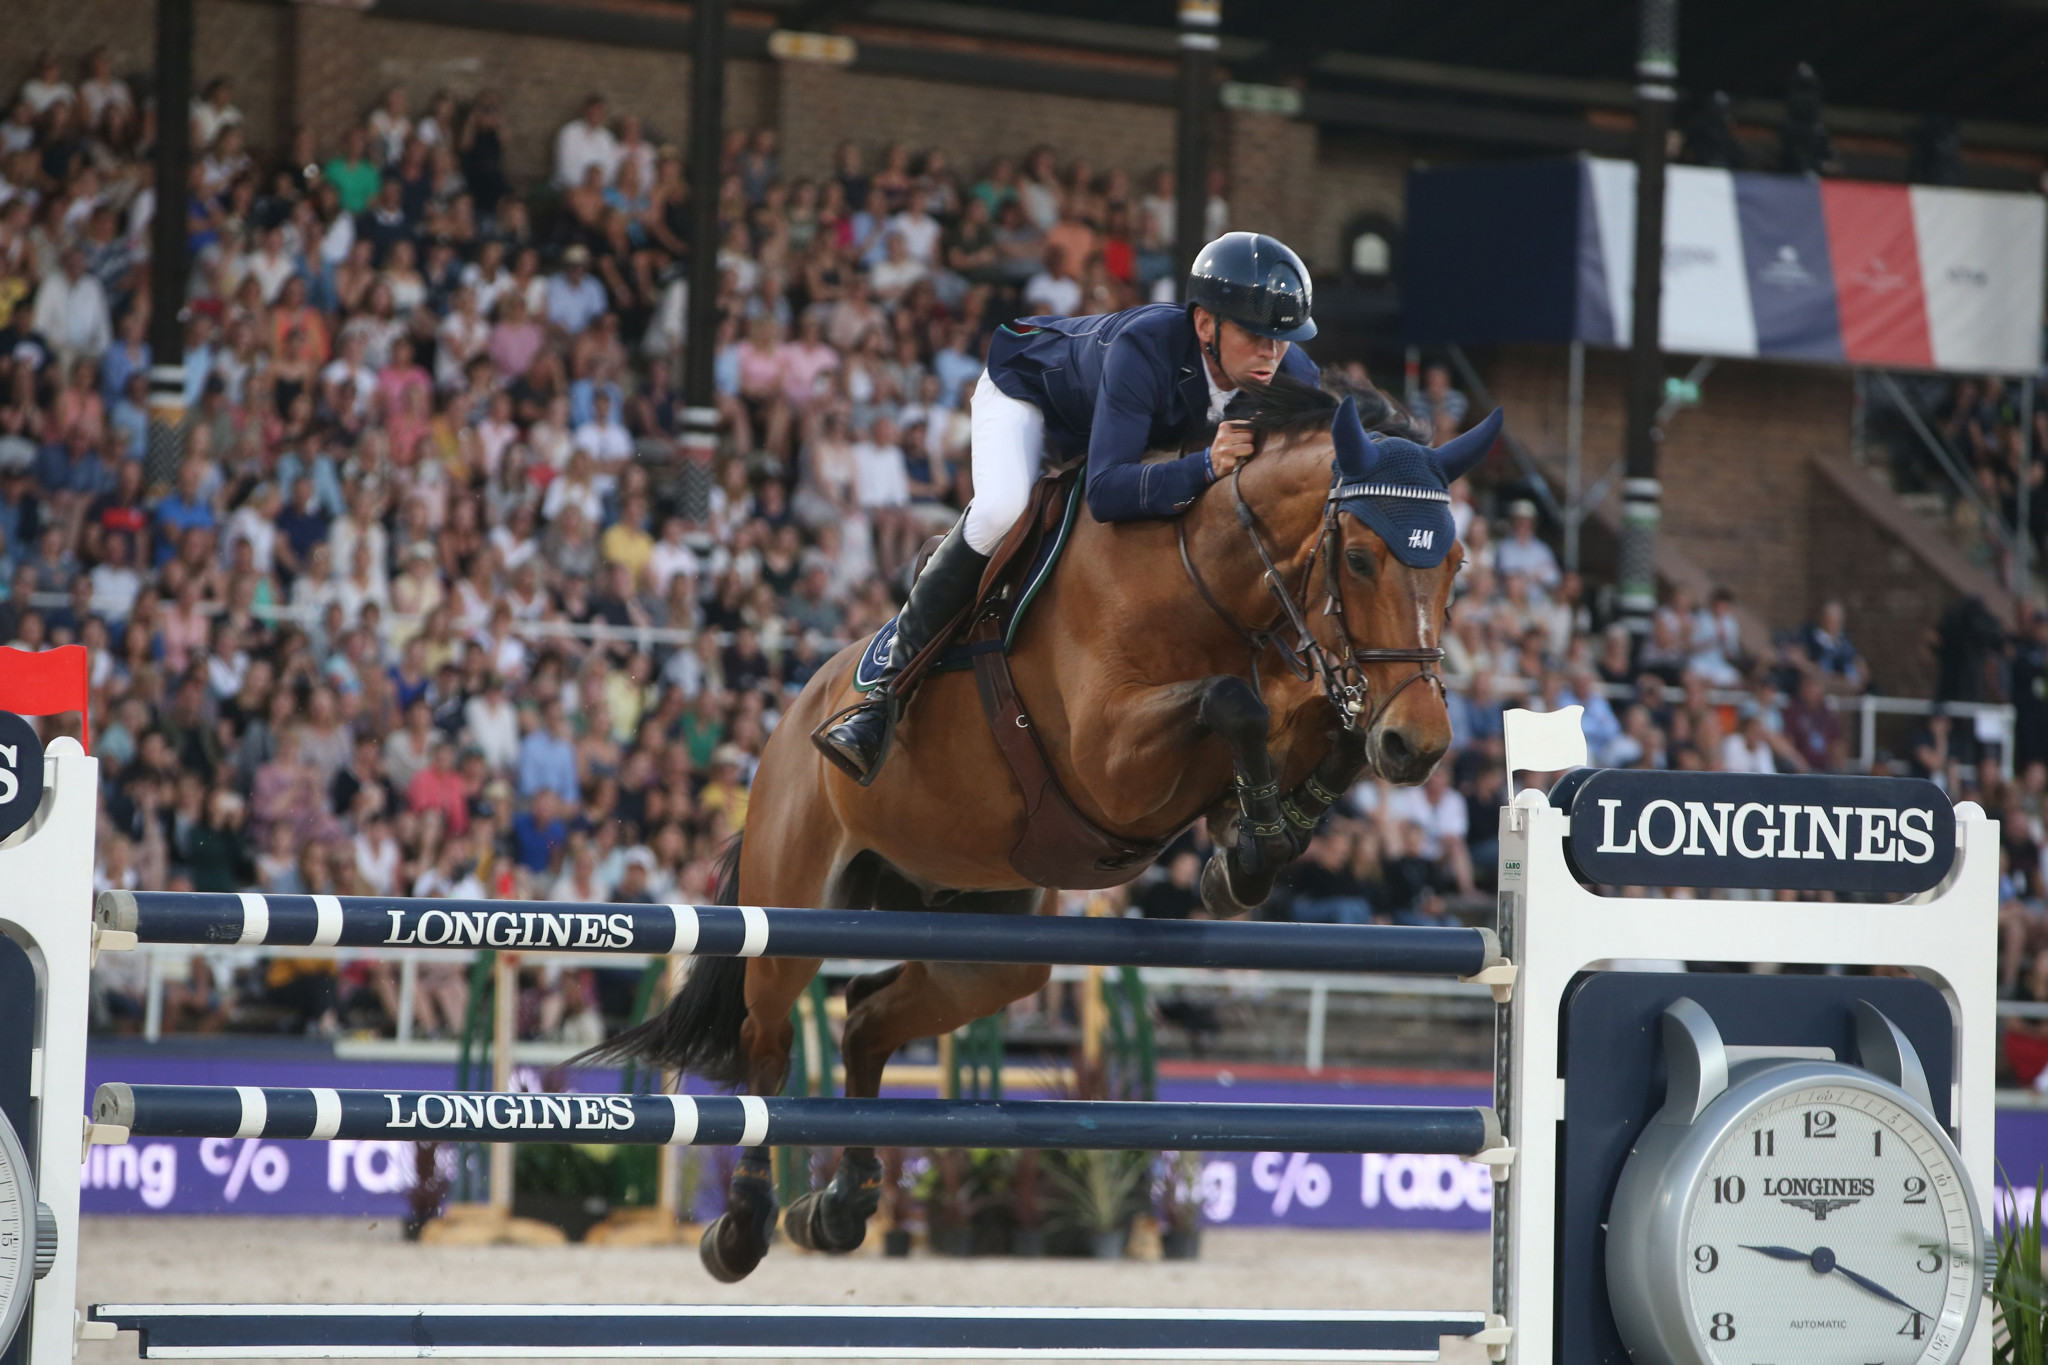 Sweden secure comfortable win at FEI Jumping Nations Cup in Hickstead